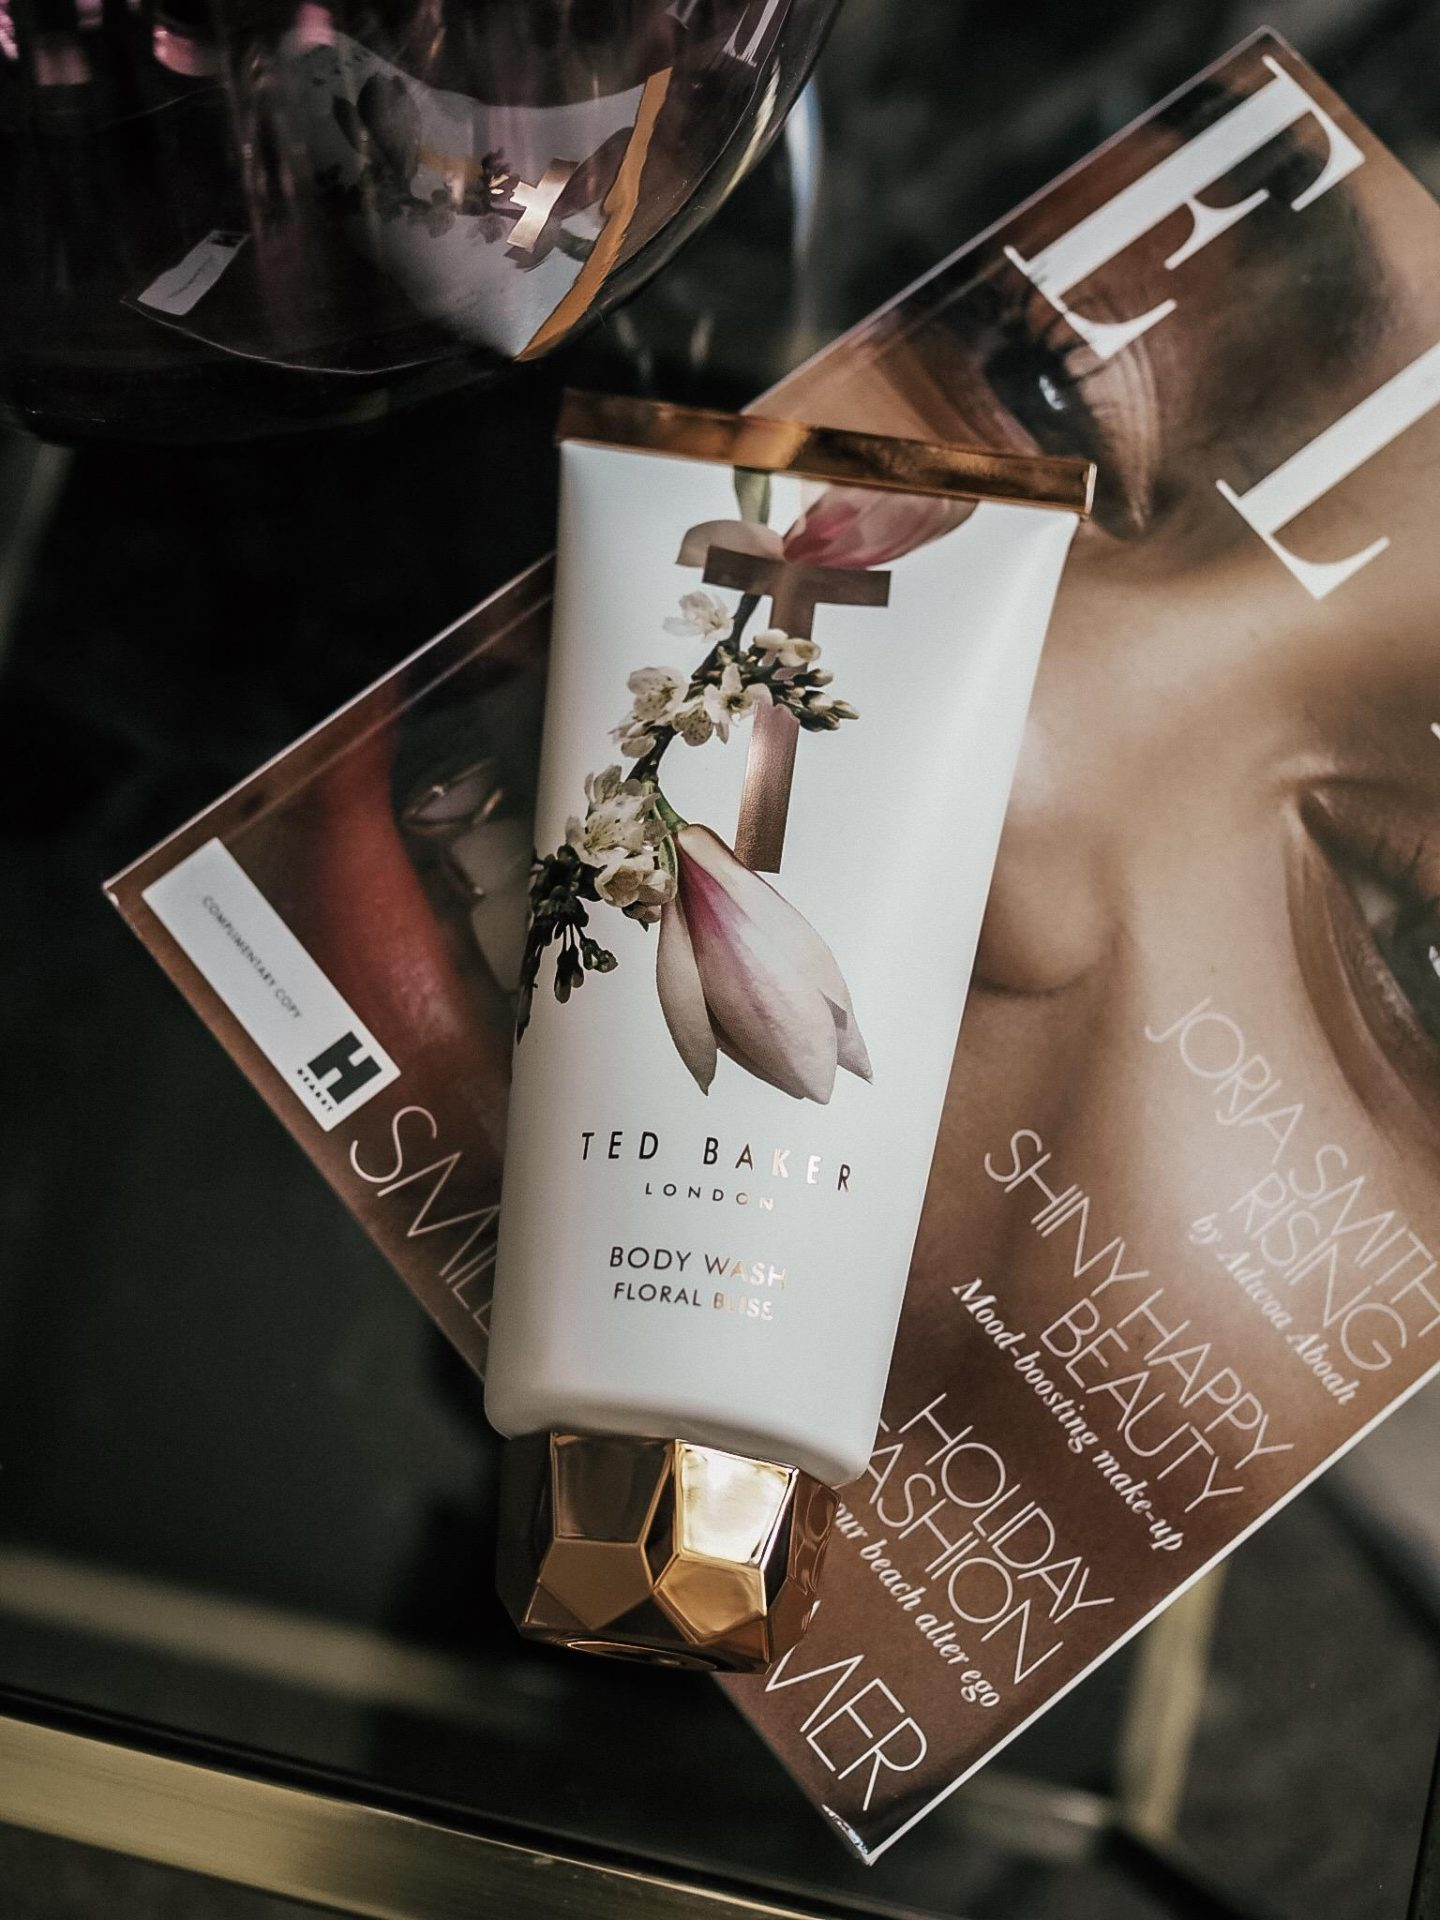 Ted Baker Floral Bliss Body Wash